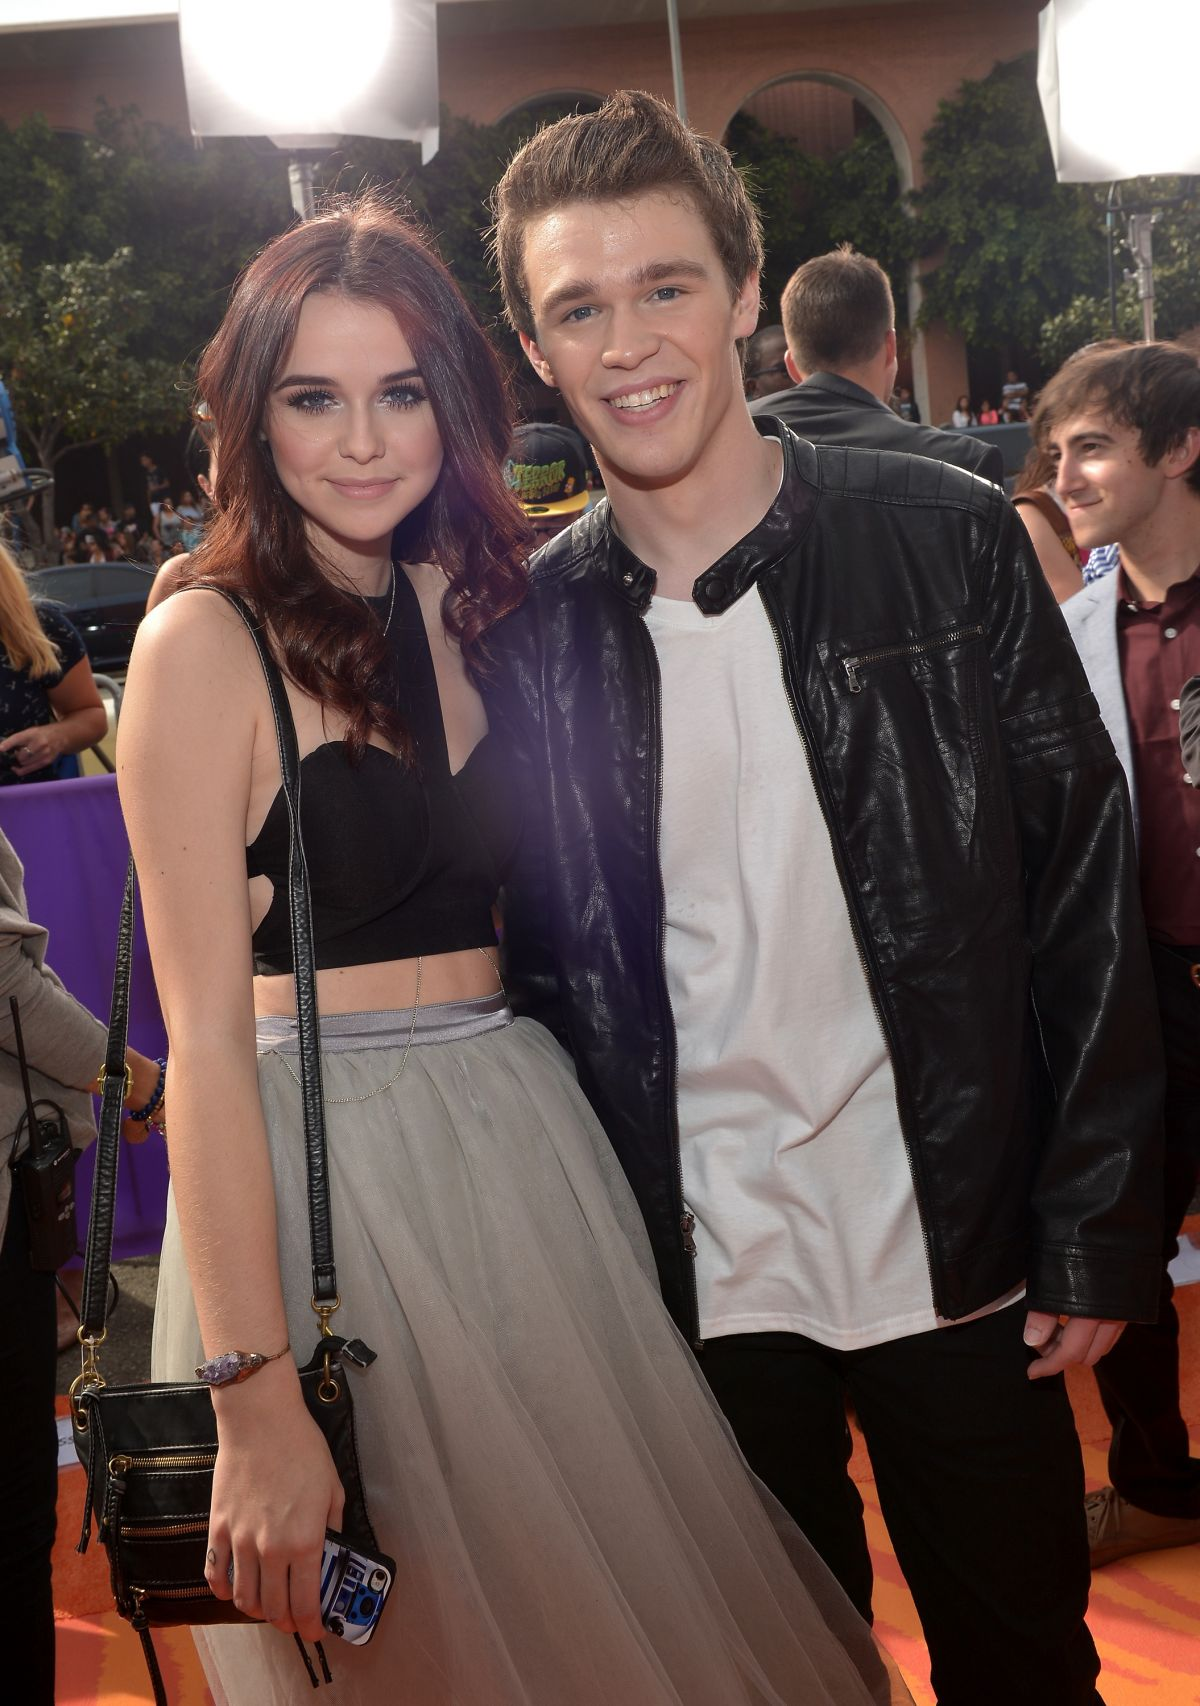 who is acacia brinley clark dating Acacia brinley clark was born october 22nd 1998 to richard and michelle clark she has two older brothers and a younger sister who was adopted her dad is a professional photographer and her.